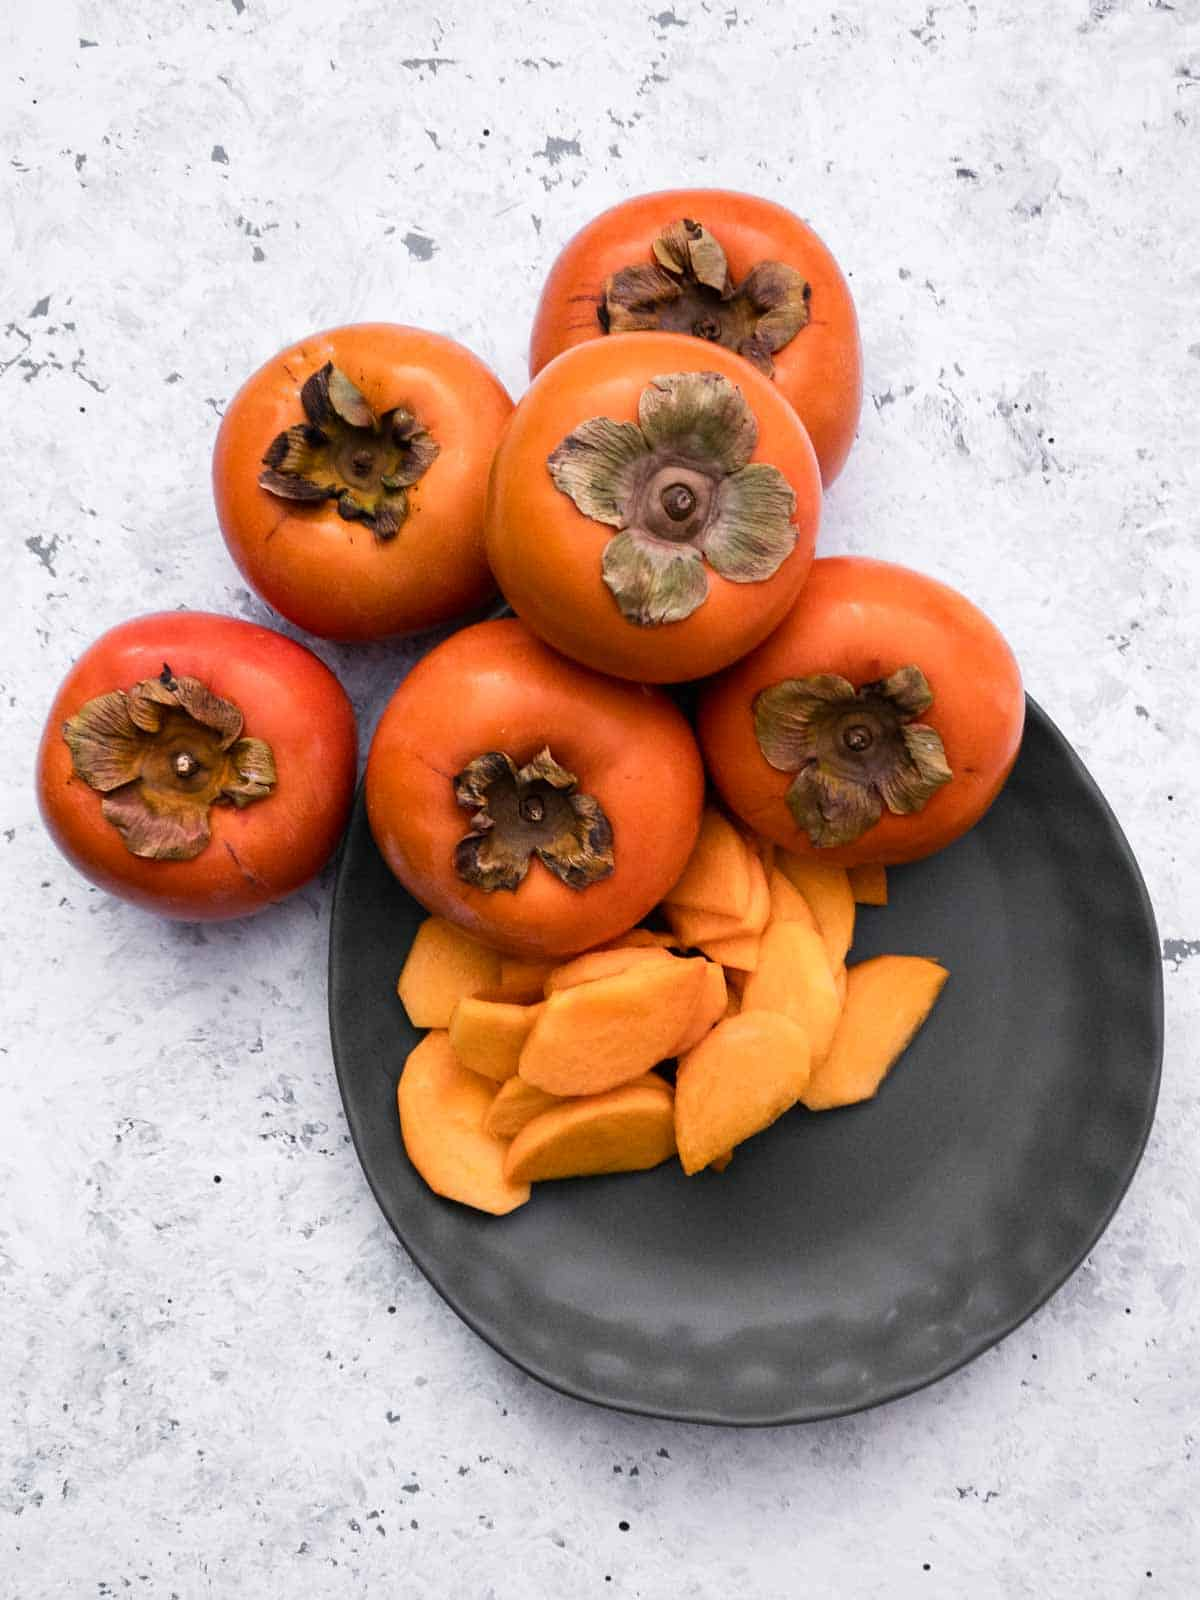 Whole and sliced persimmons